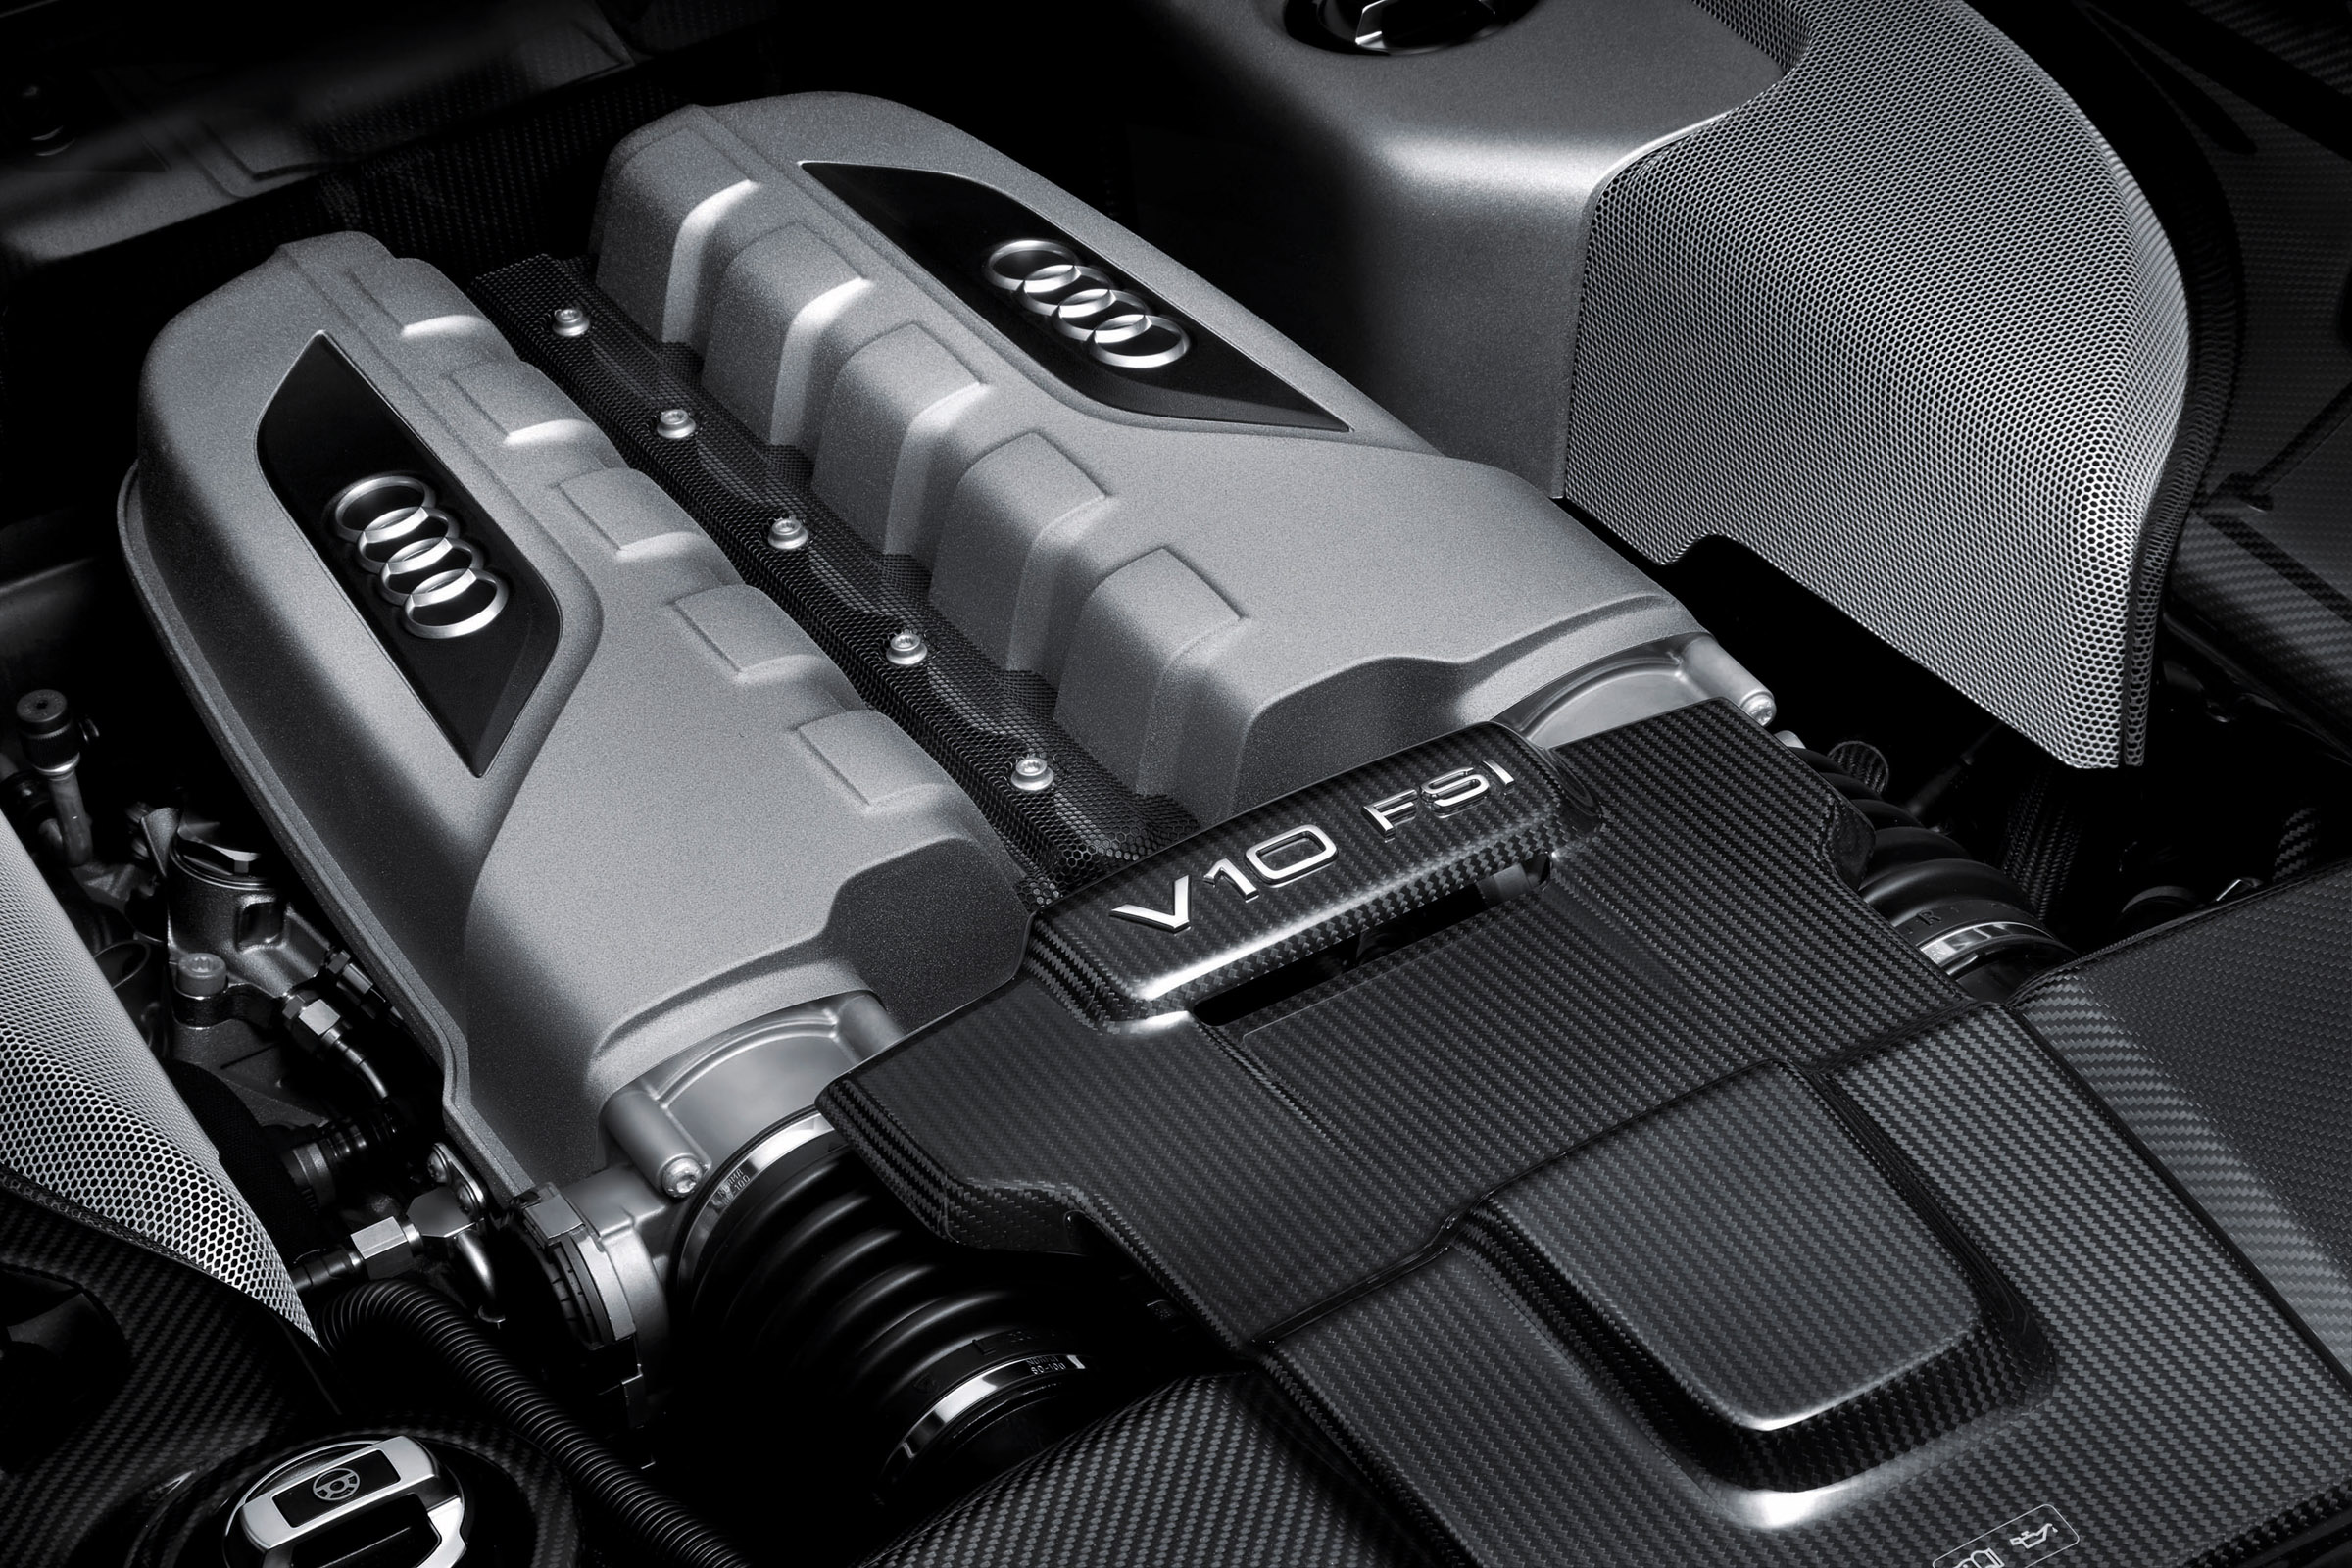 2013 Audi R8 V10 plus 550 hp V10 FSI Engine